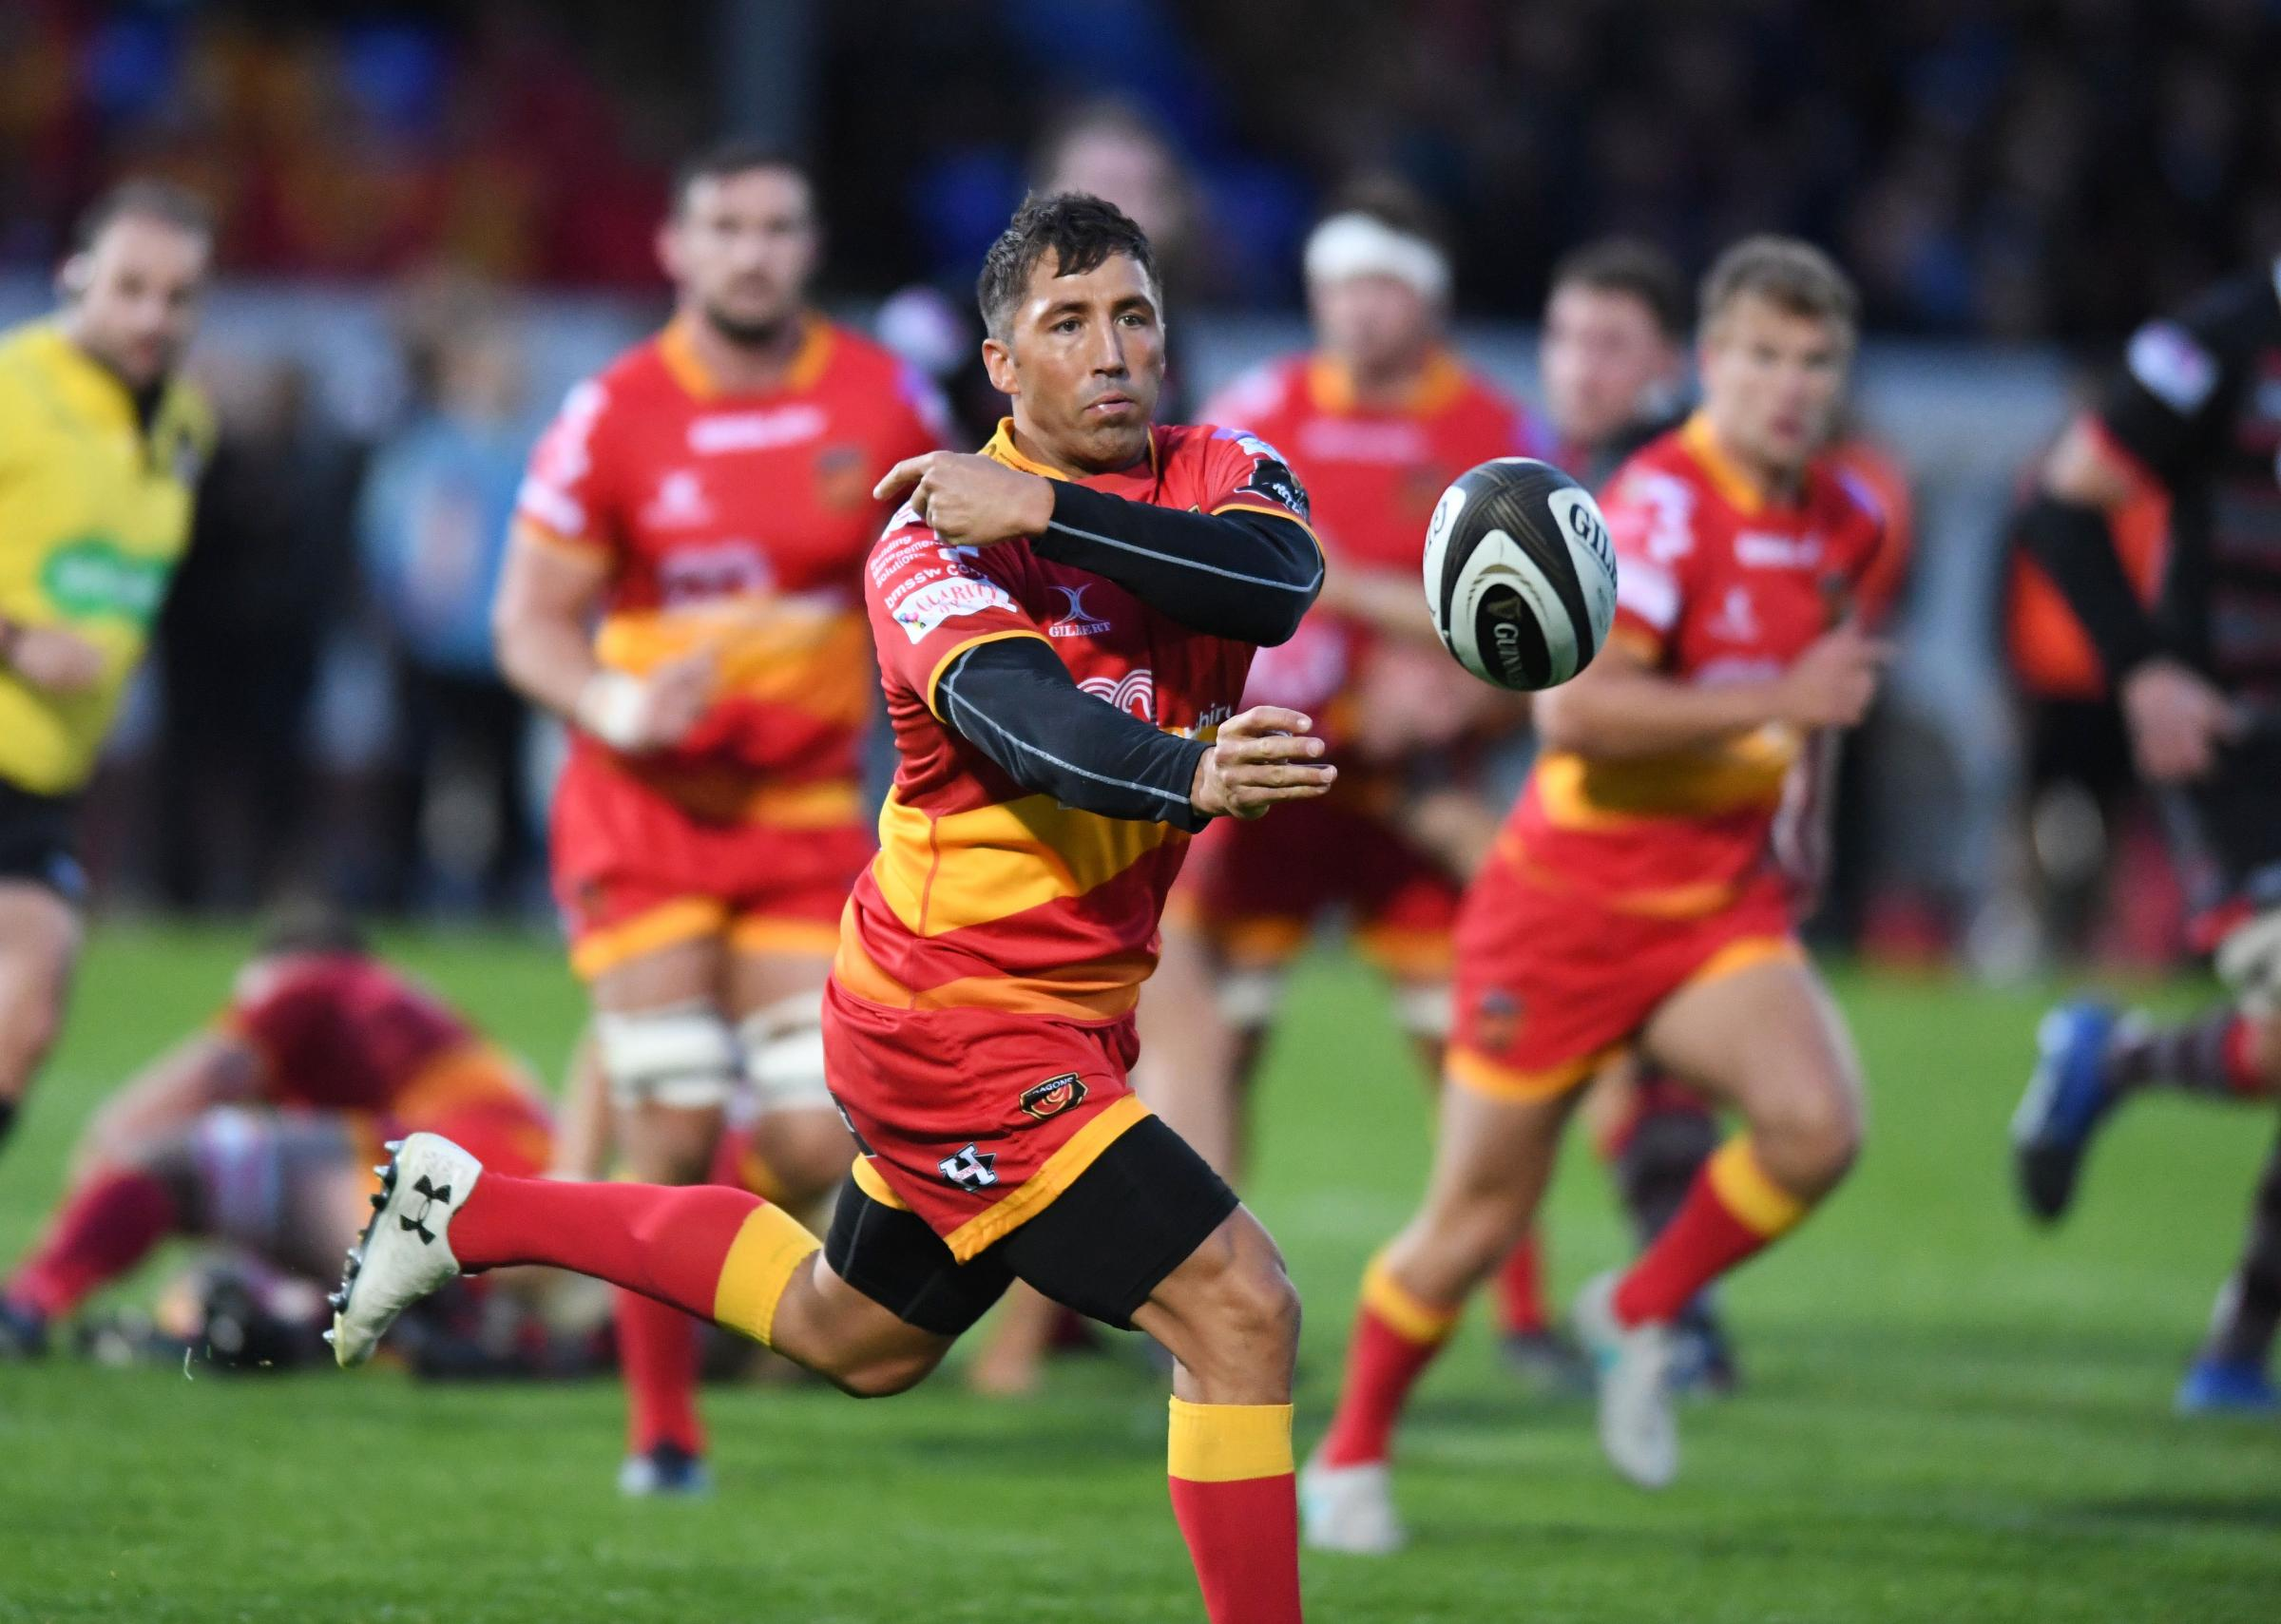 Edinburgh 35 Dragons 18: Another away defeat for Rodney Parade region despite signs of attacking spark